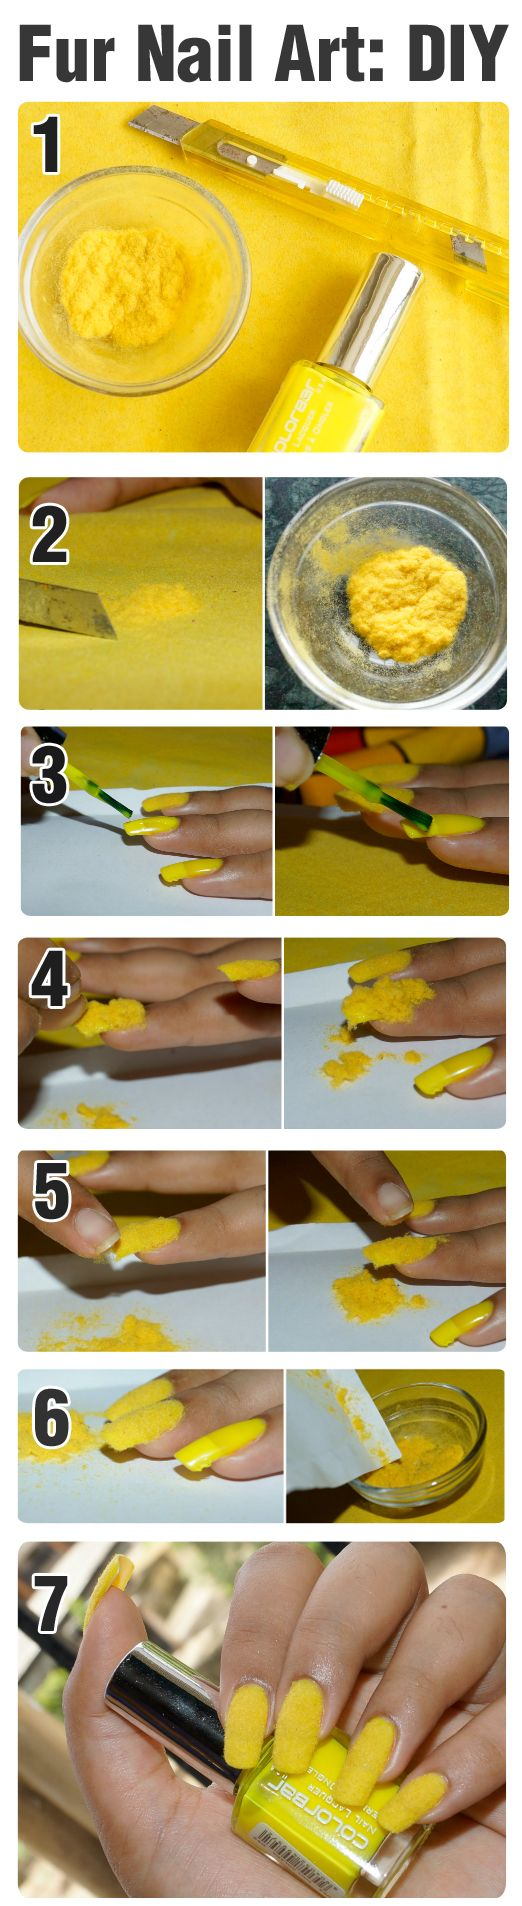 """Homemade flocking powder pictorial: Use a straight blade to """"shave"""" material of your desired color to create flocking powder and save it in a bowl. Paint your nails with a similar color polish and while still wet, with paper underneath,  sprinkle the powder over the nails. Use the paper to save the remaining powder."""